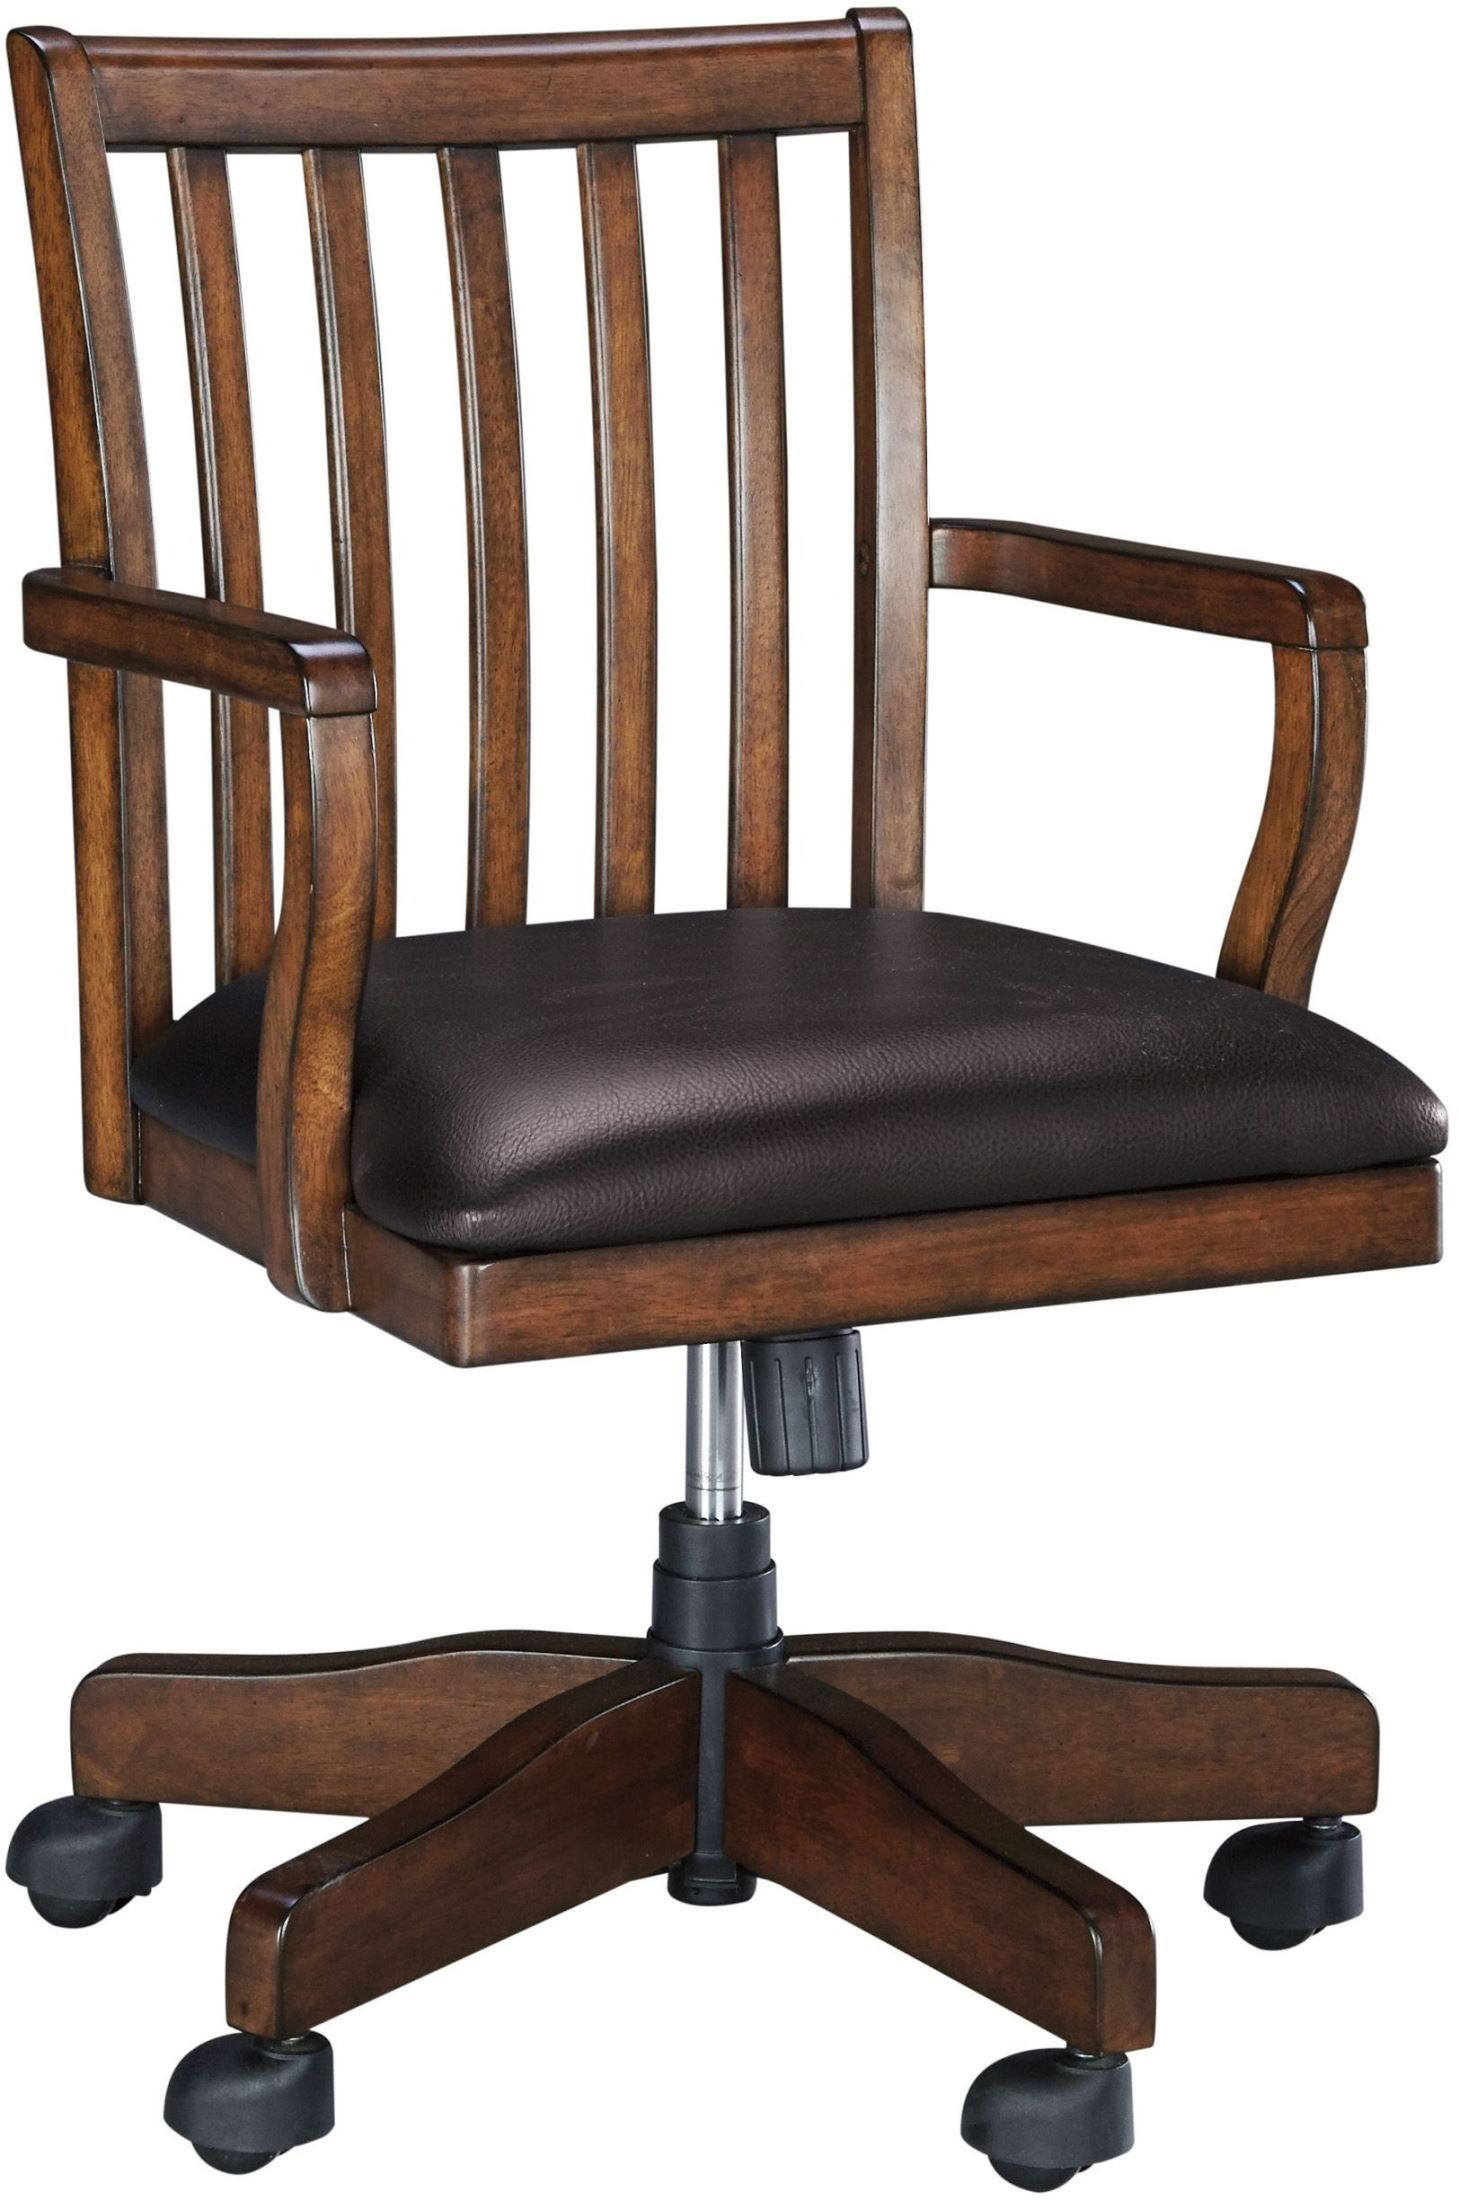 swivel chair for home office covers woodboro brown desk h478 01a ashley